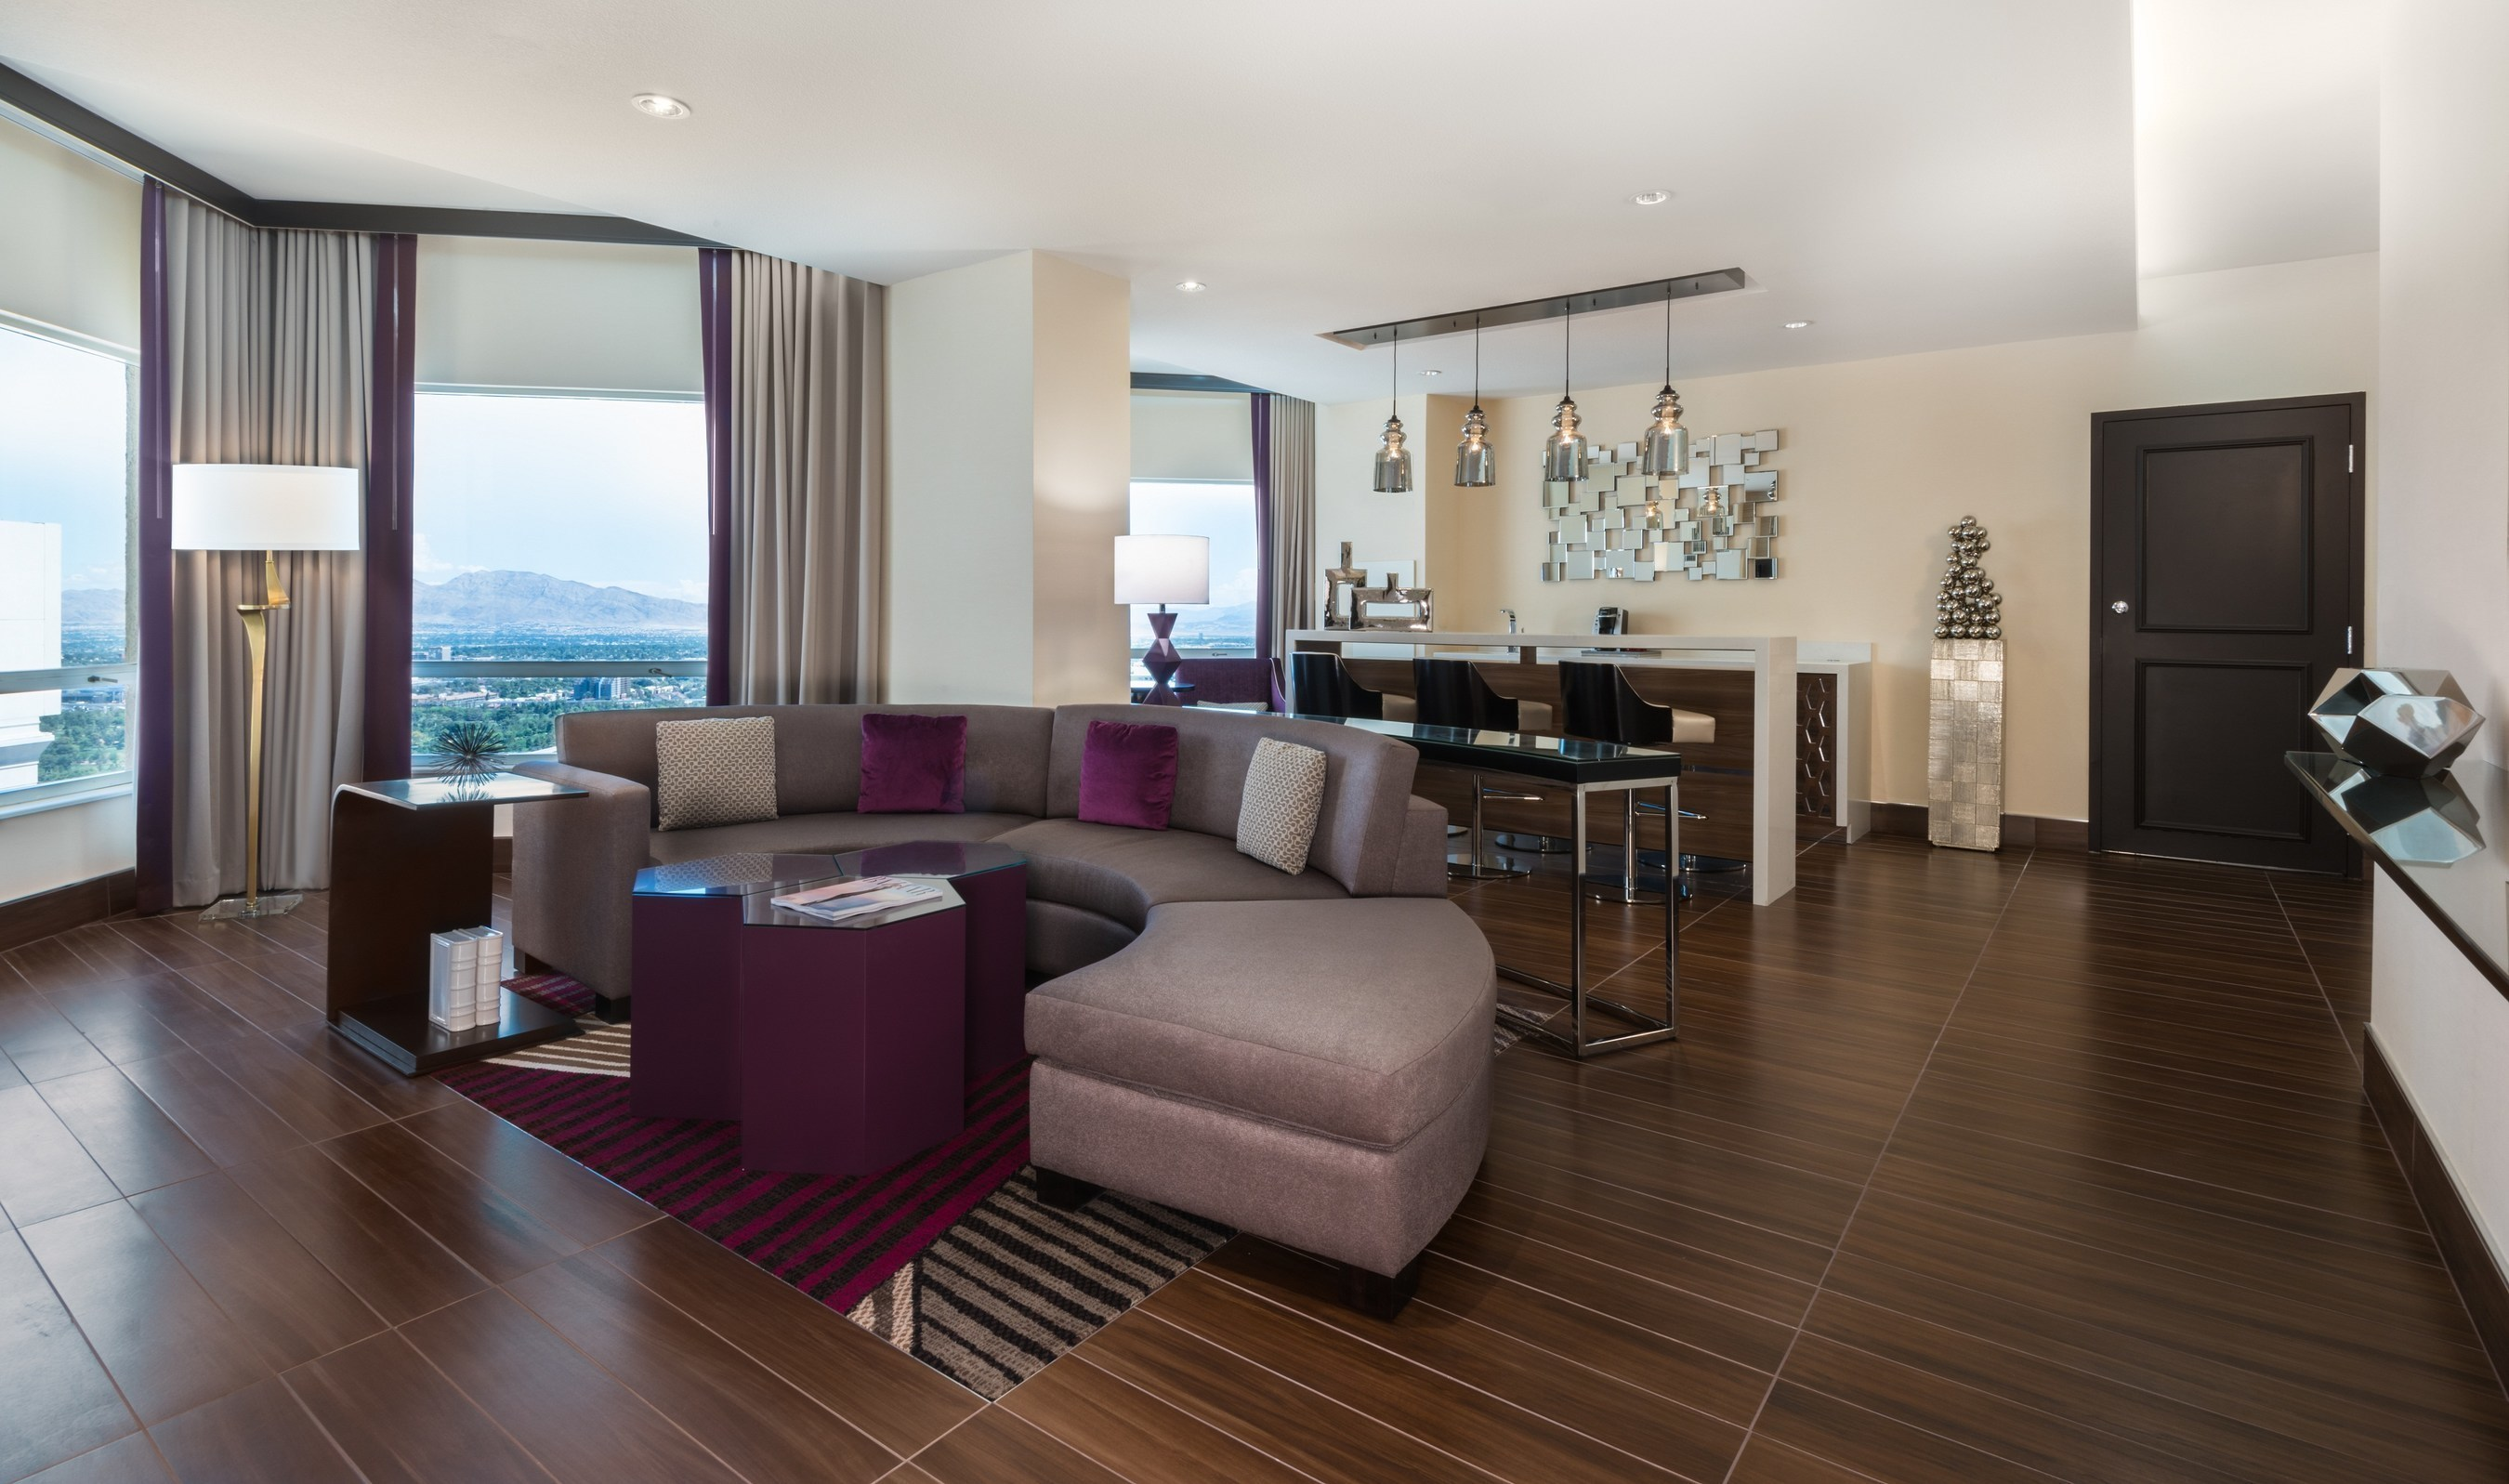 Harrah's Las Vegas Unveils Vice Presidential Suite In The Fully Renovated Valley Tower